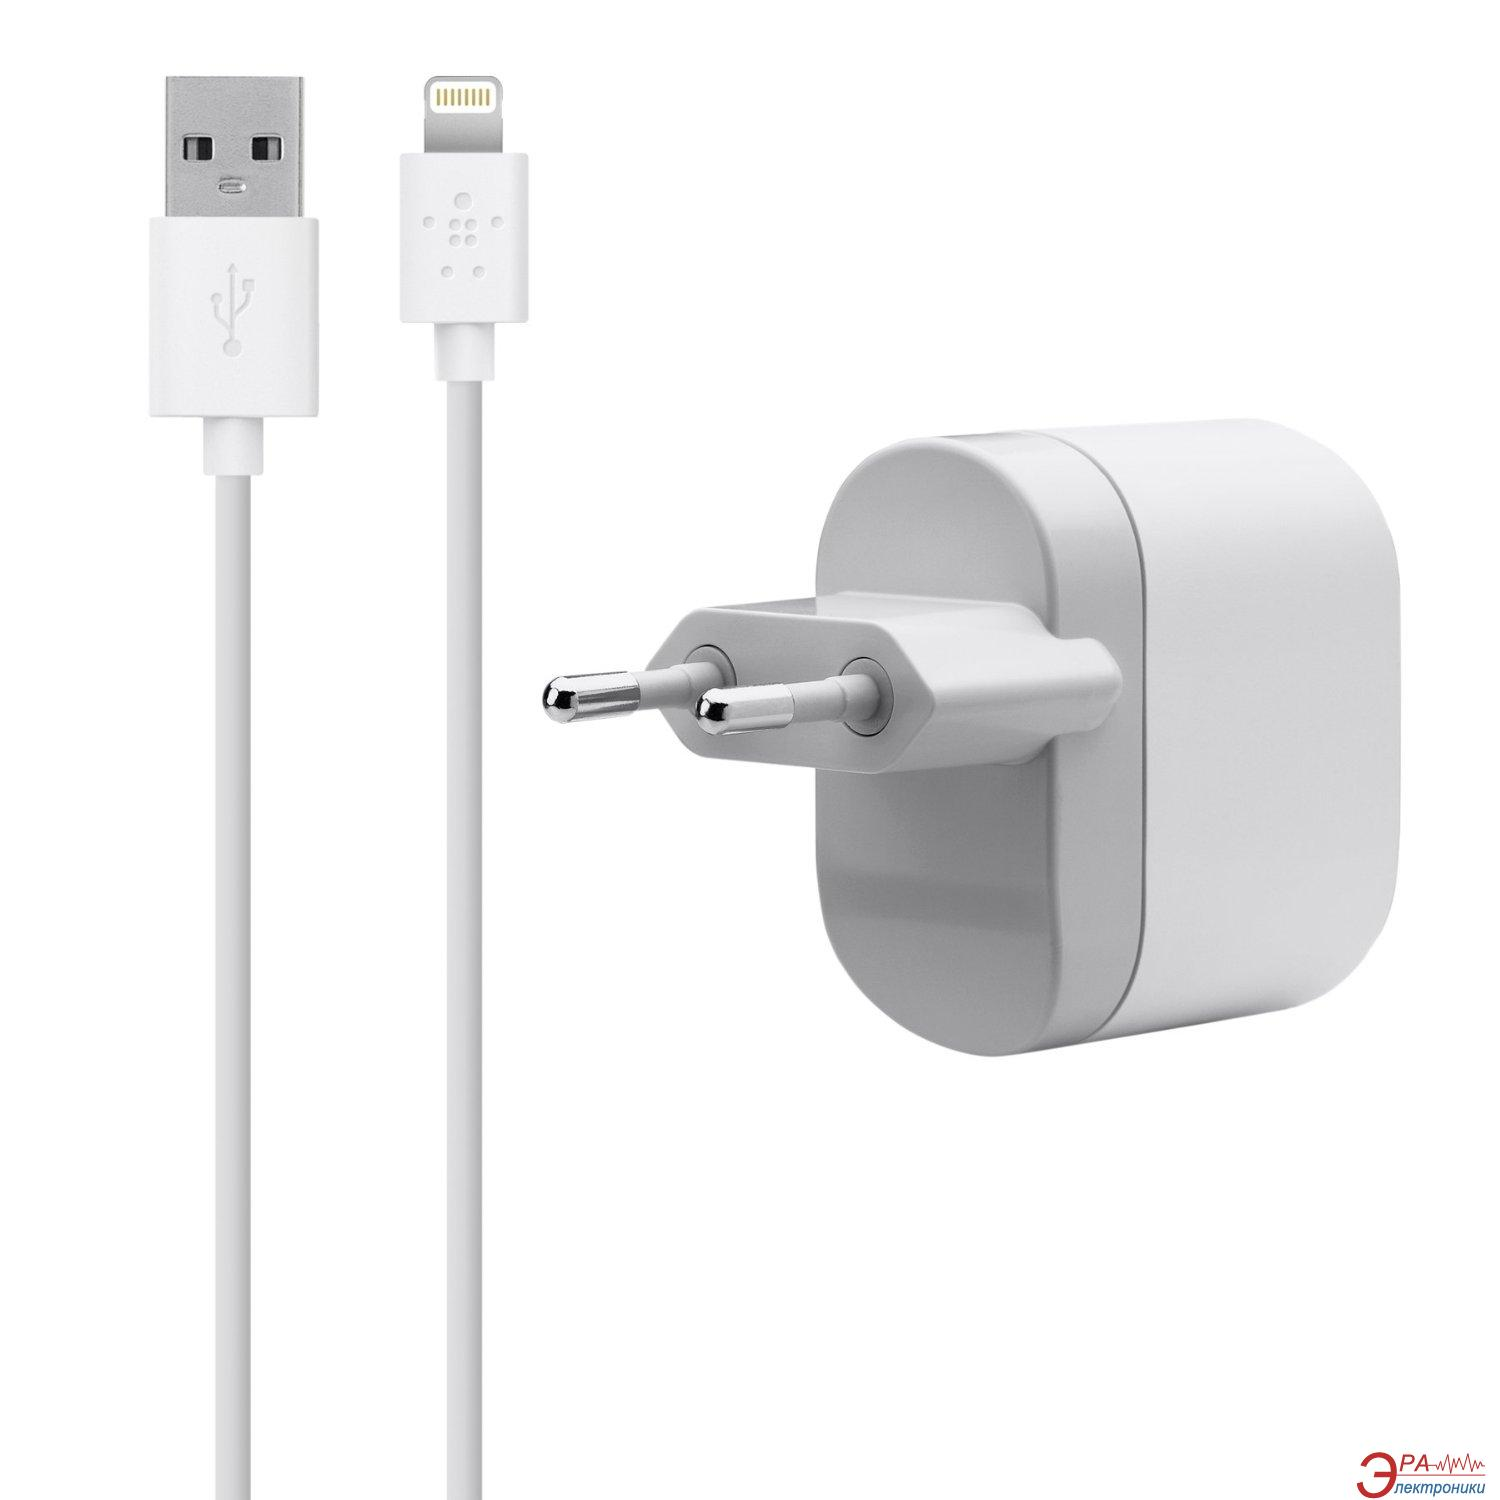 Зарядное устройство Belkin USB Charger (220V + Apple Lightning cable USB 1Amp) White (F8J112vf04-WHT)